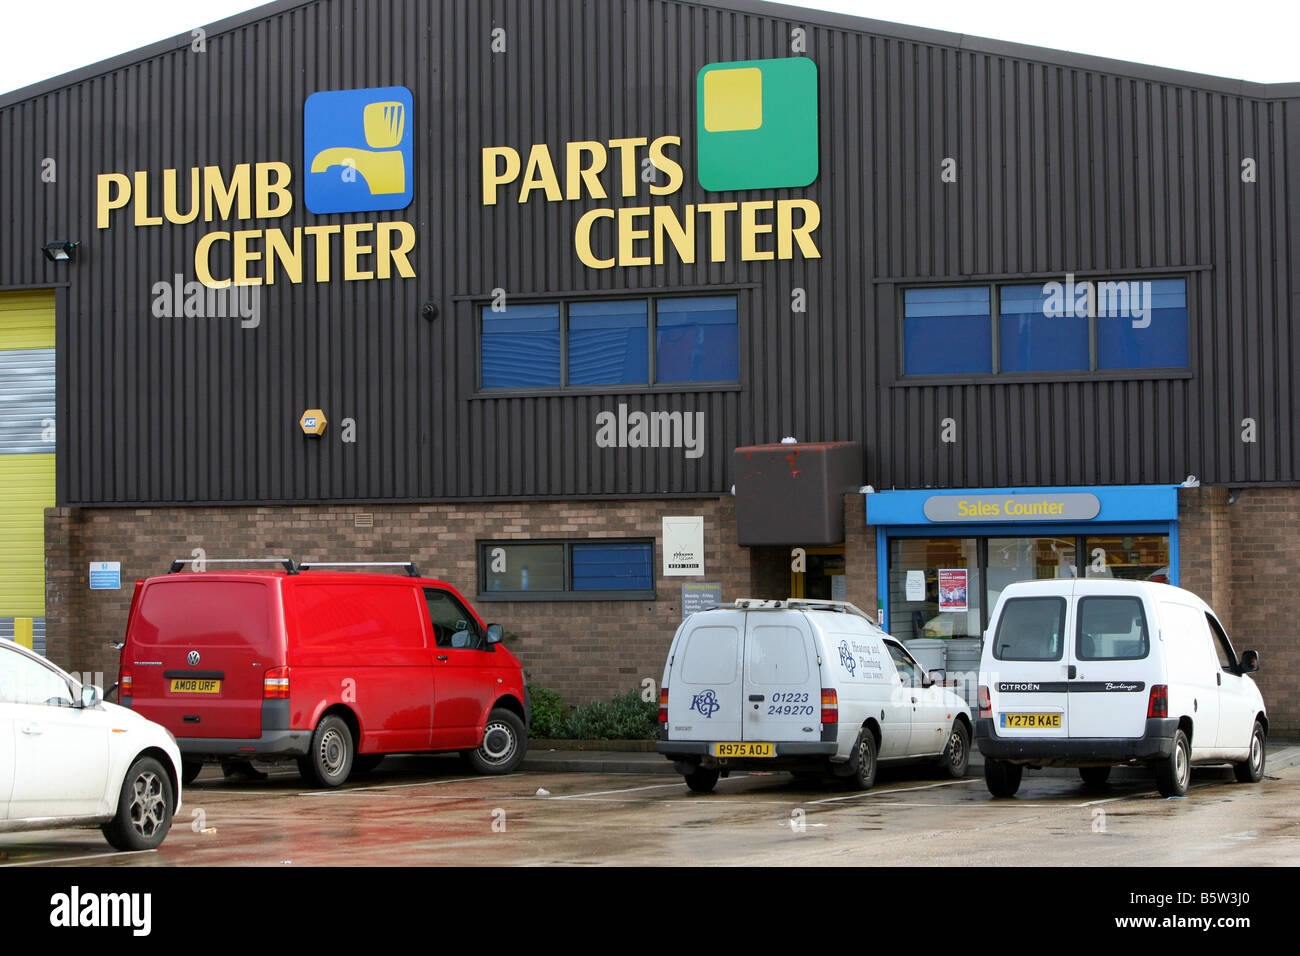 The Plumb Center A Plumbing And Building Materials Firm Owned By